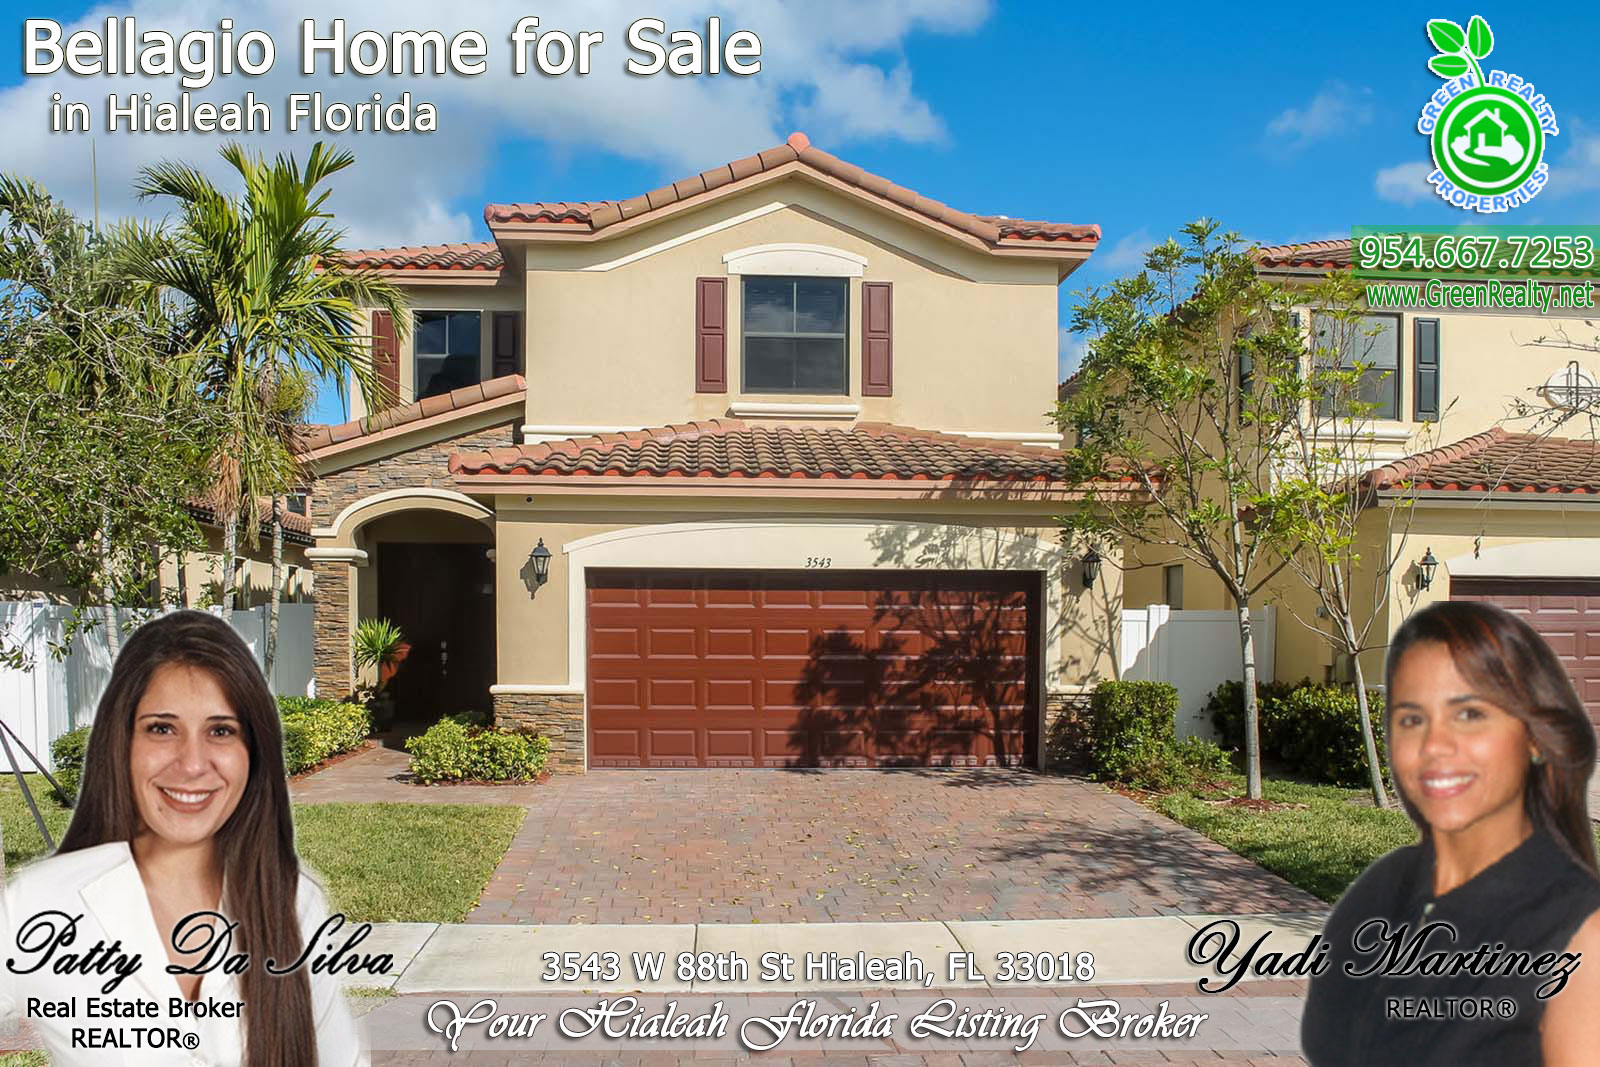 2 3543-W-88th-St-Hialeah-FL-green-realty-properties-home-for-sale-bellagio